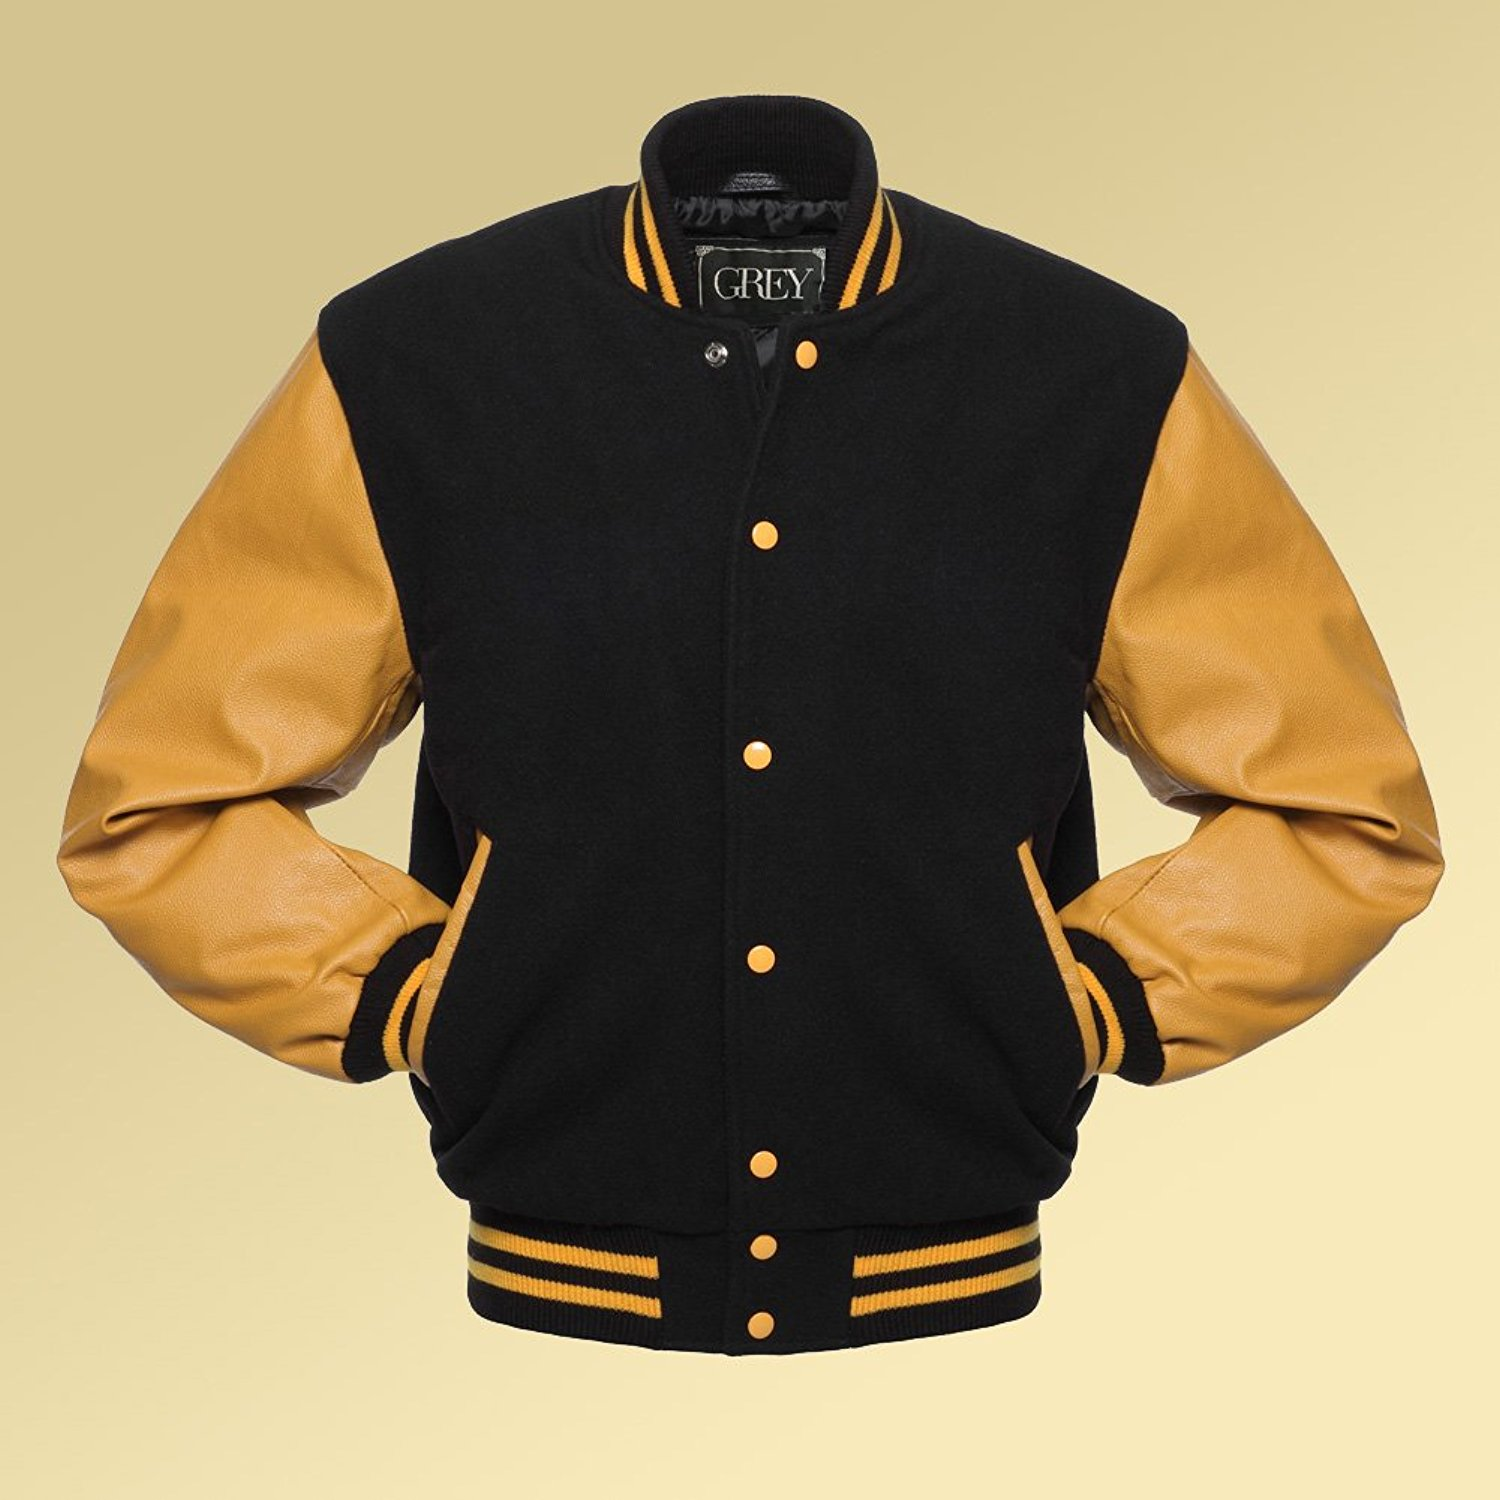 558c8326ac5 Get Quotations · Varsity Jacket for Men's (Black/Yellow Gold) Lettermen  Wool Body/Leather Sleeves